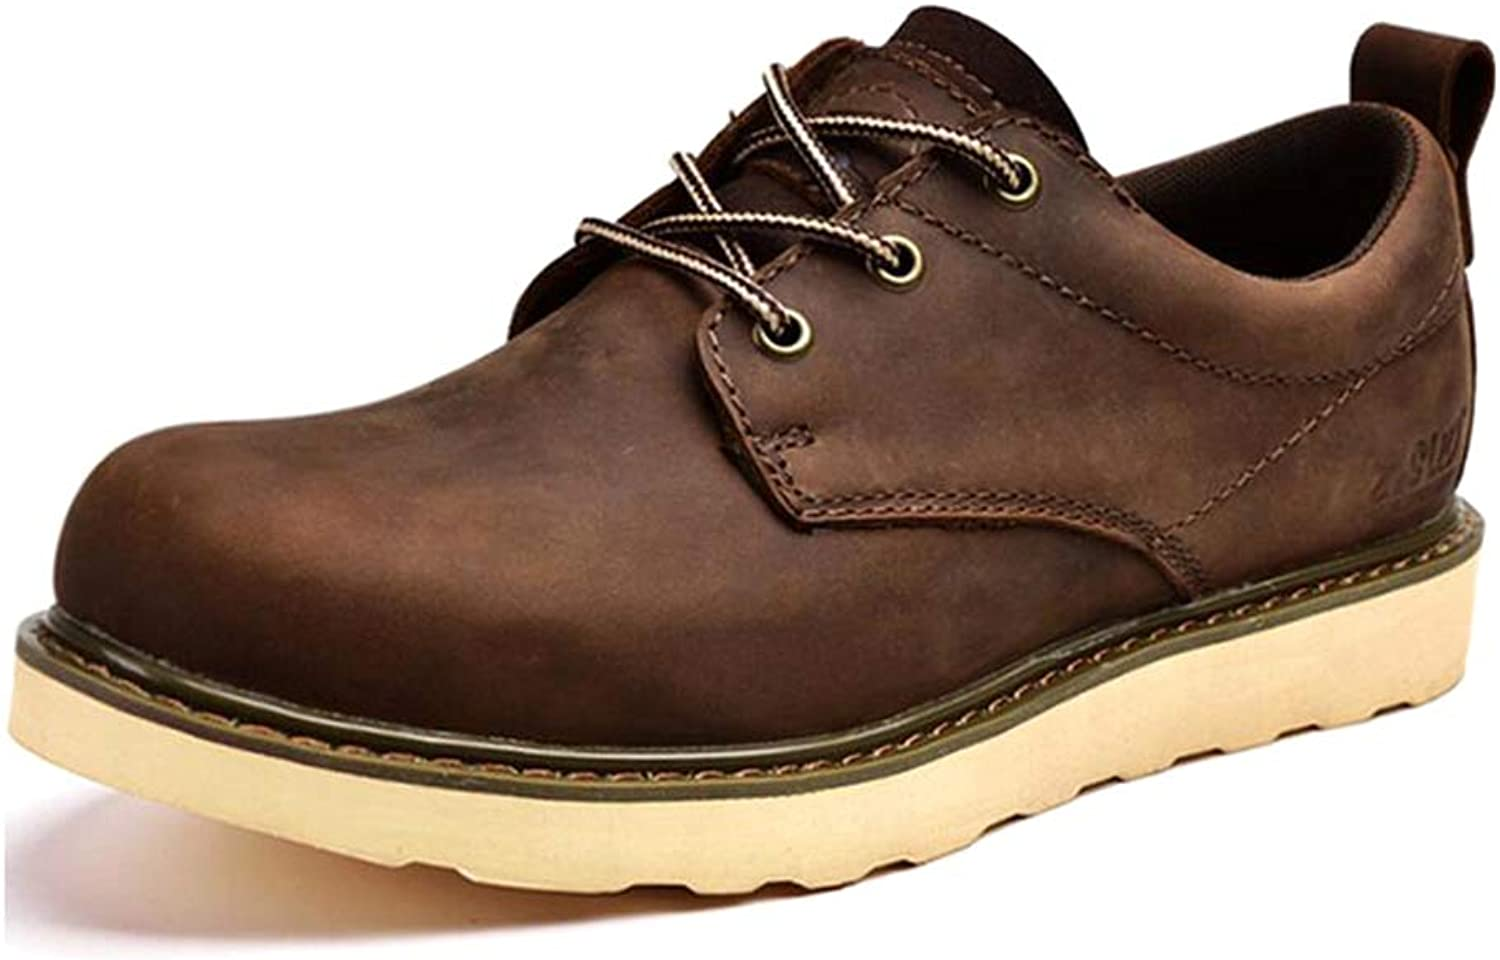 Y-H Men's Casual shoes, Fall winter Leather Low Top Lace-up Martins Boots,Men Formal shoes,Tooling Boots Trekking (color   Brown, Size   41)